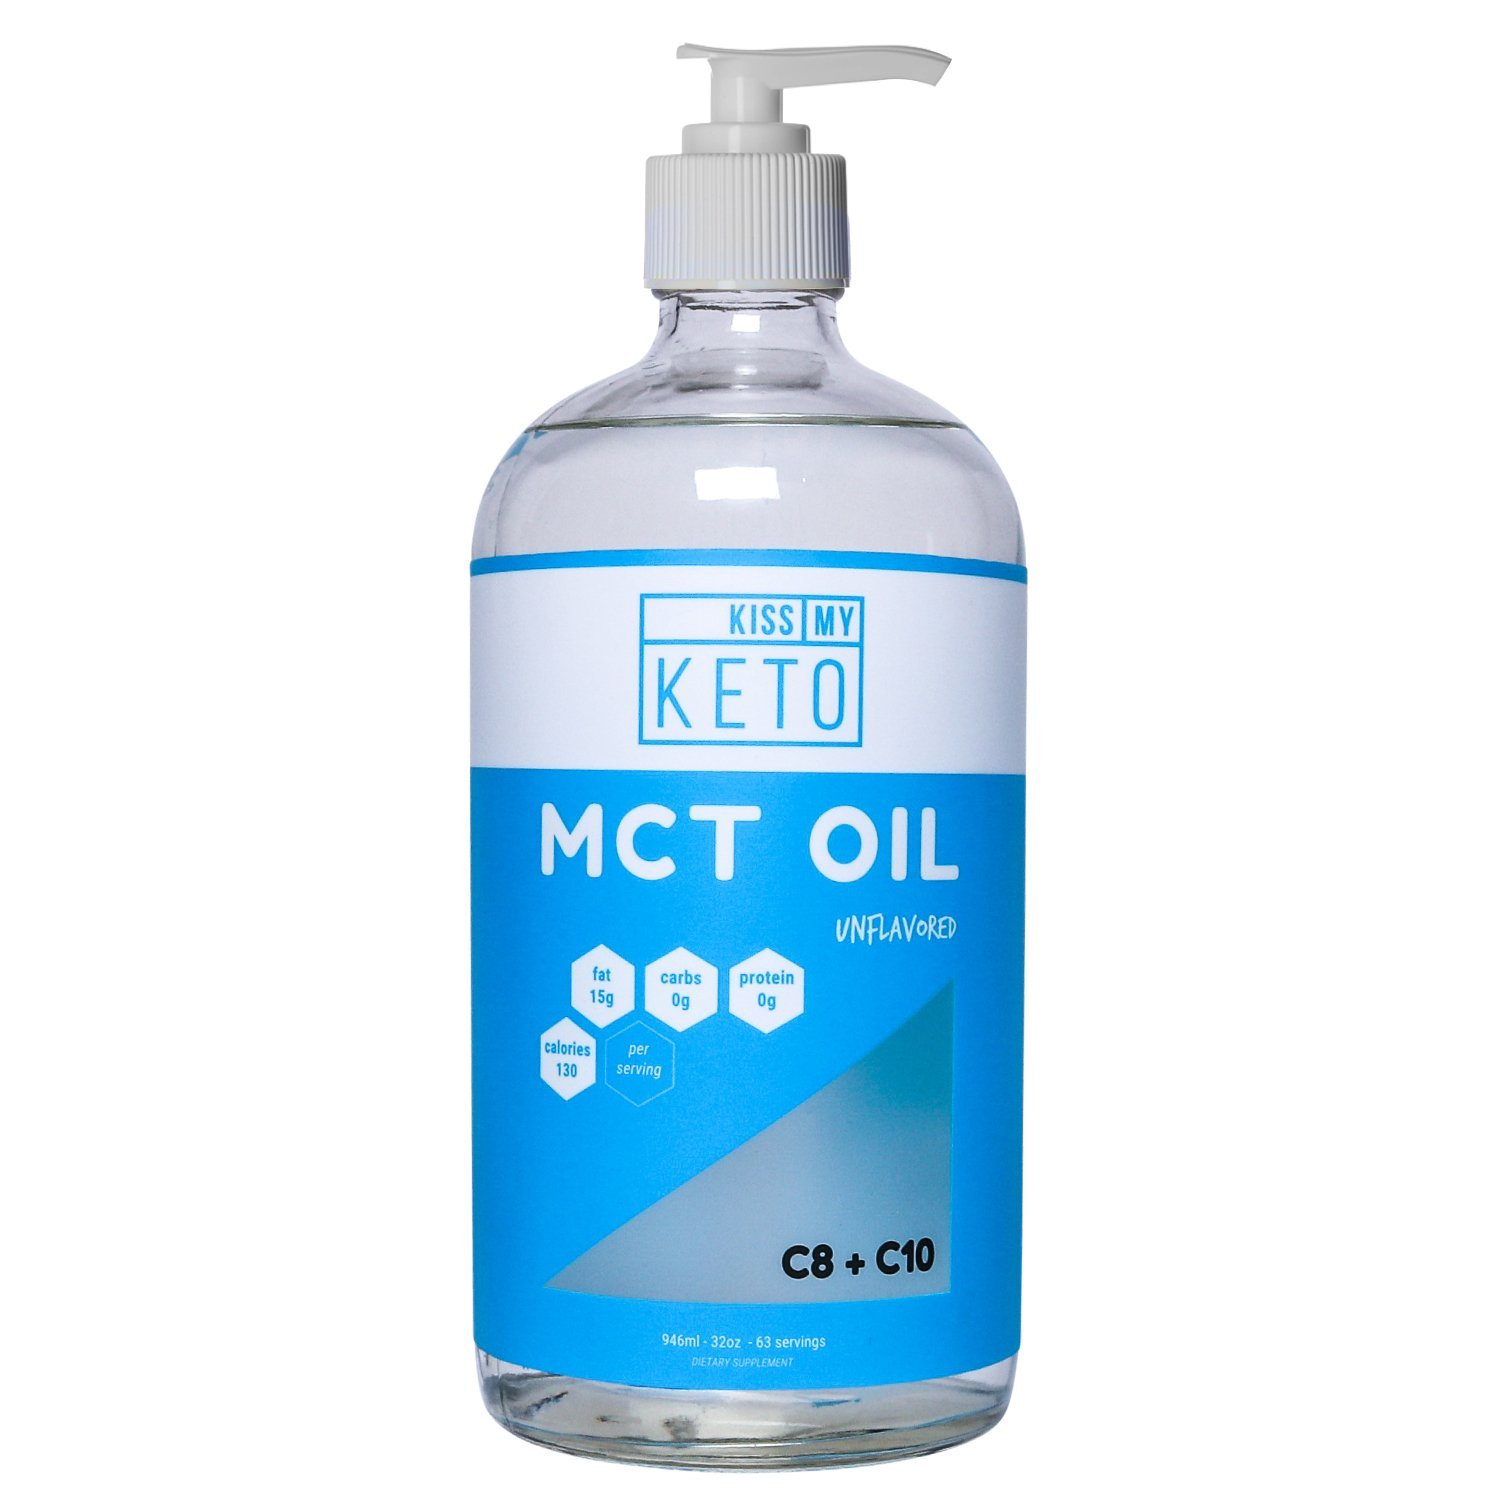 Kiss My Keto MCT Oil - Derived Only from Non-GMO Coconut Oil, 32 oz Glass Bottle w/Pump, Convert Energy Into Ketones, Caprylic Acid for Ketogenic, Paleo, Vegan Diets, Enhance Performance and Ketosis by Kiss My Keto (Image #1)